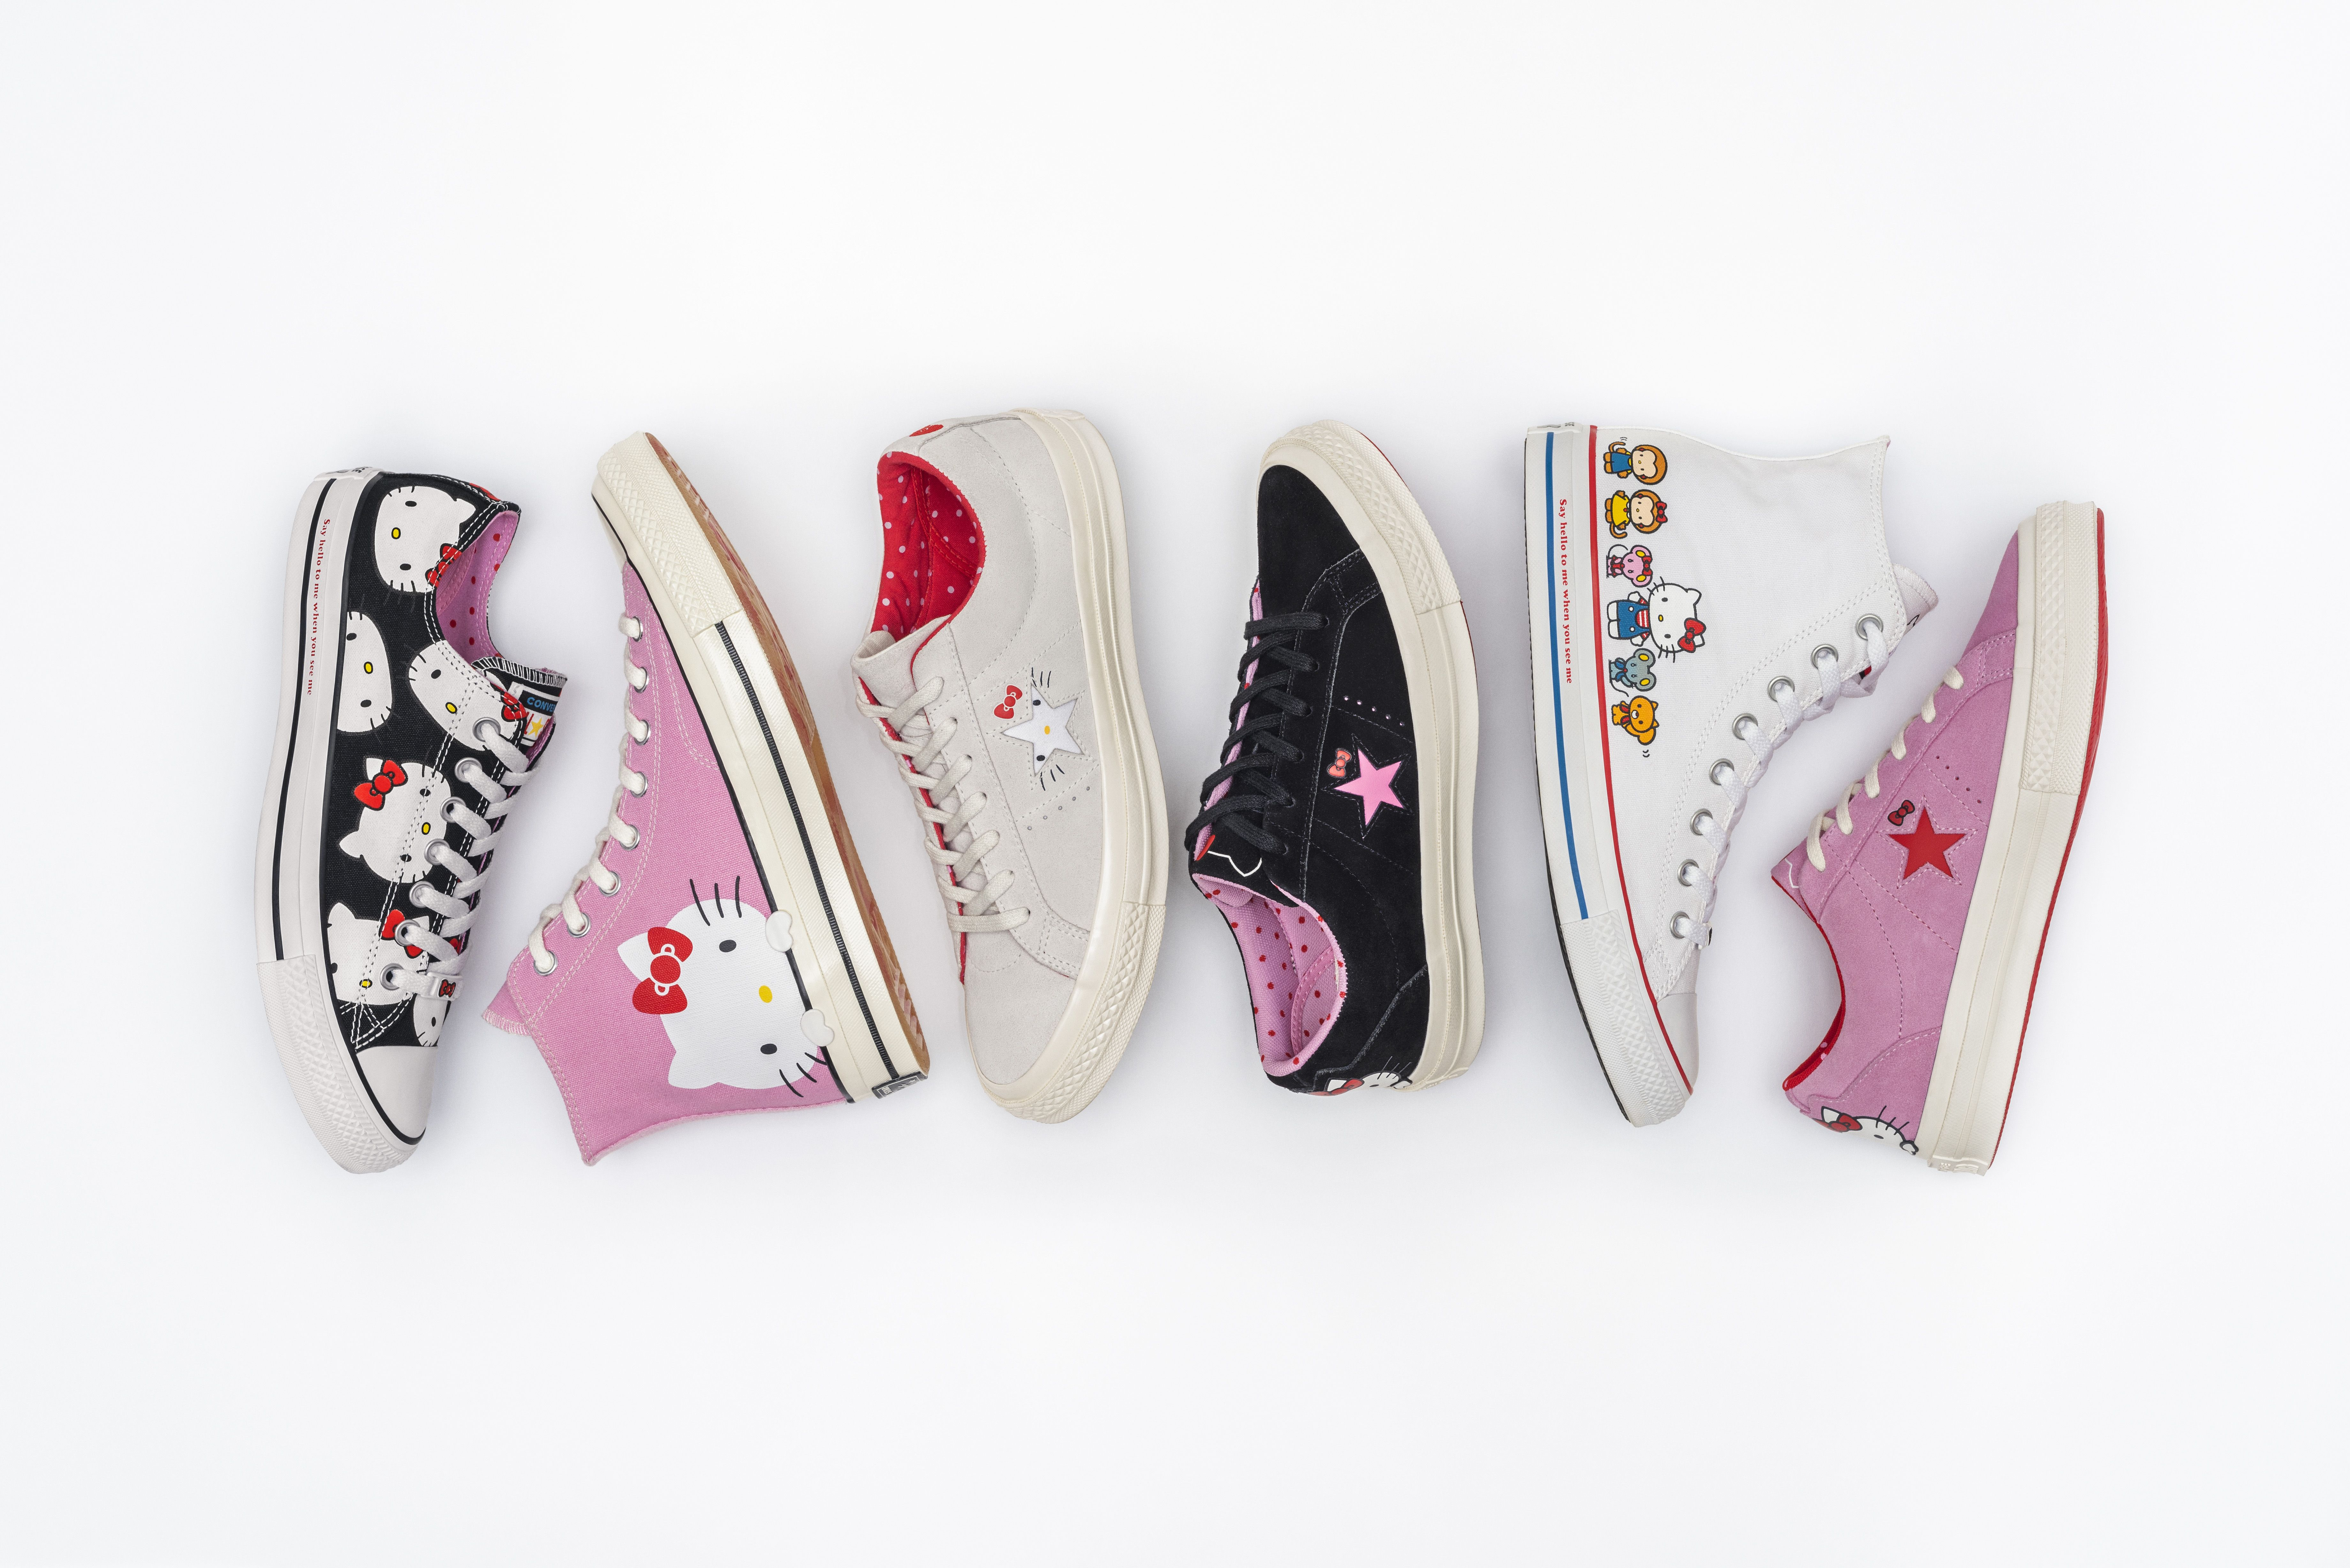 Fans de 'Hello Kitty': estas son las zapatillas que vais a